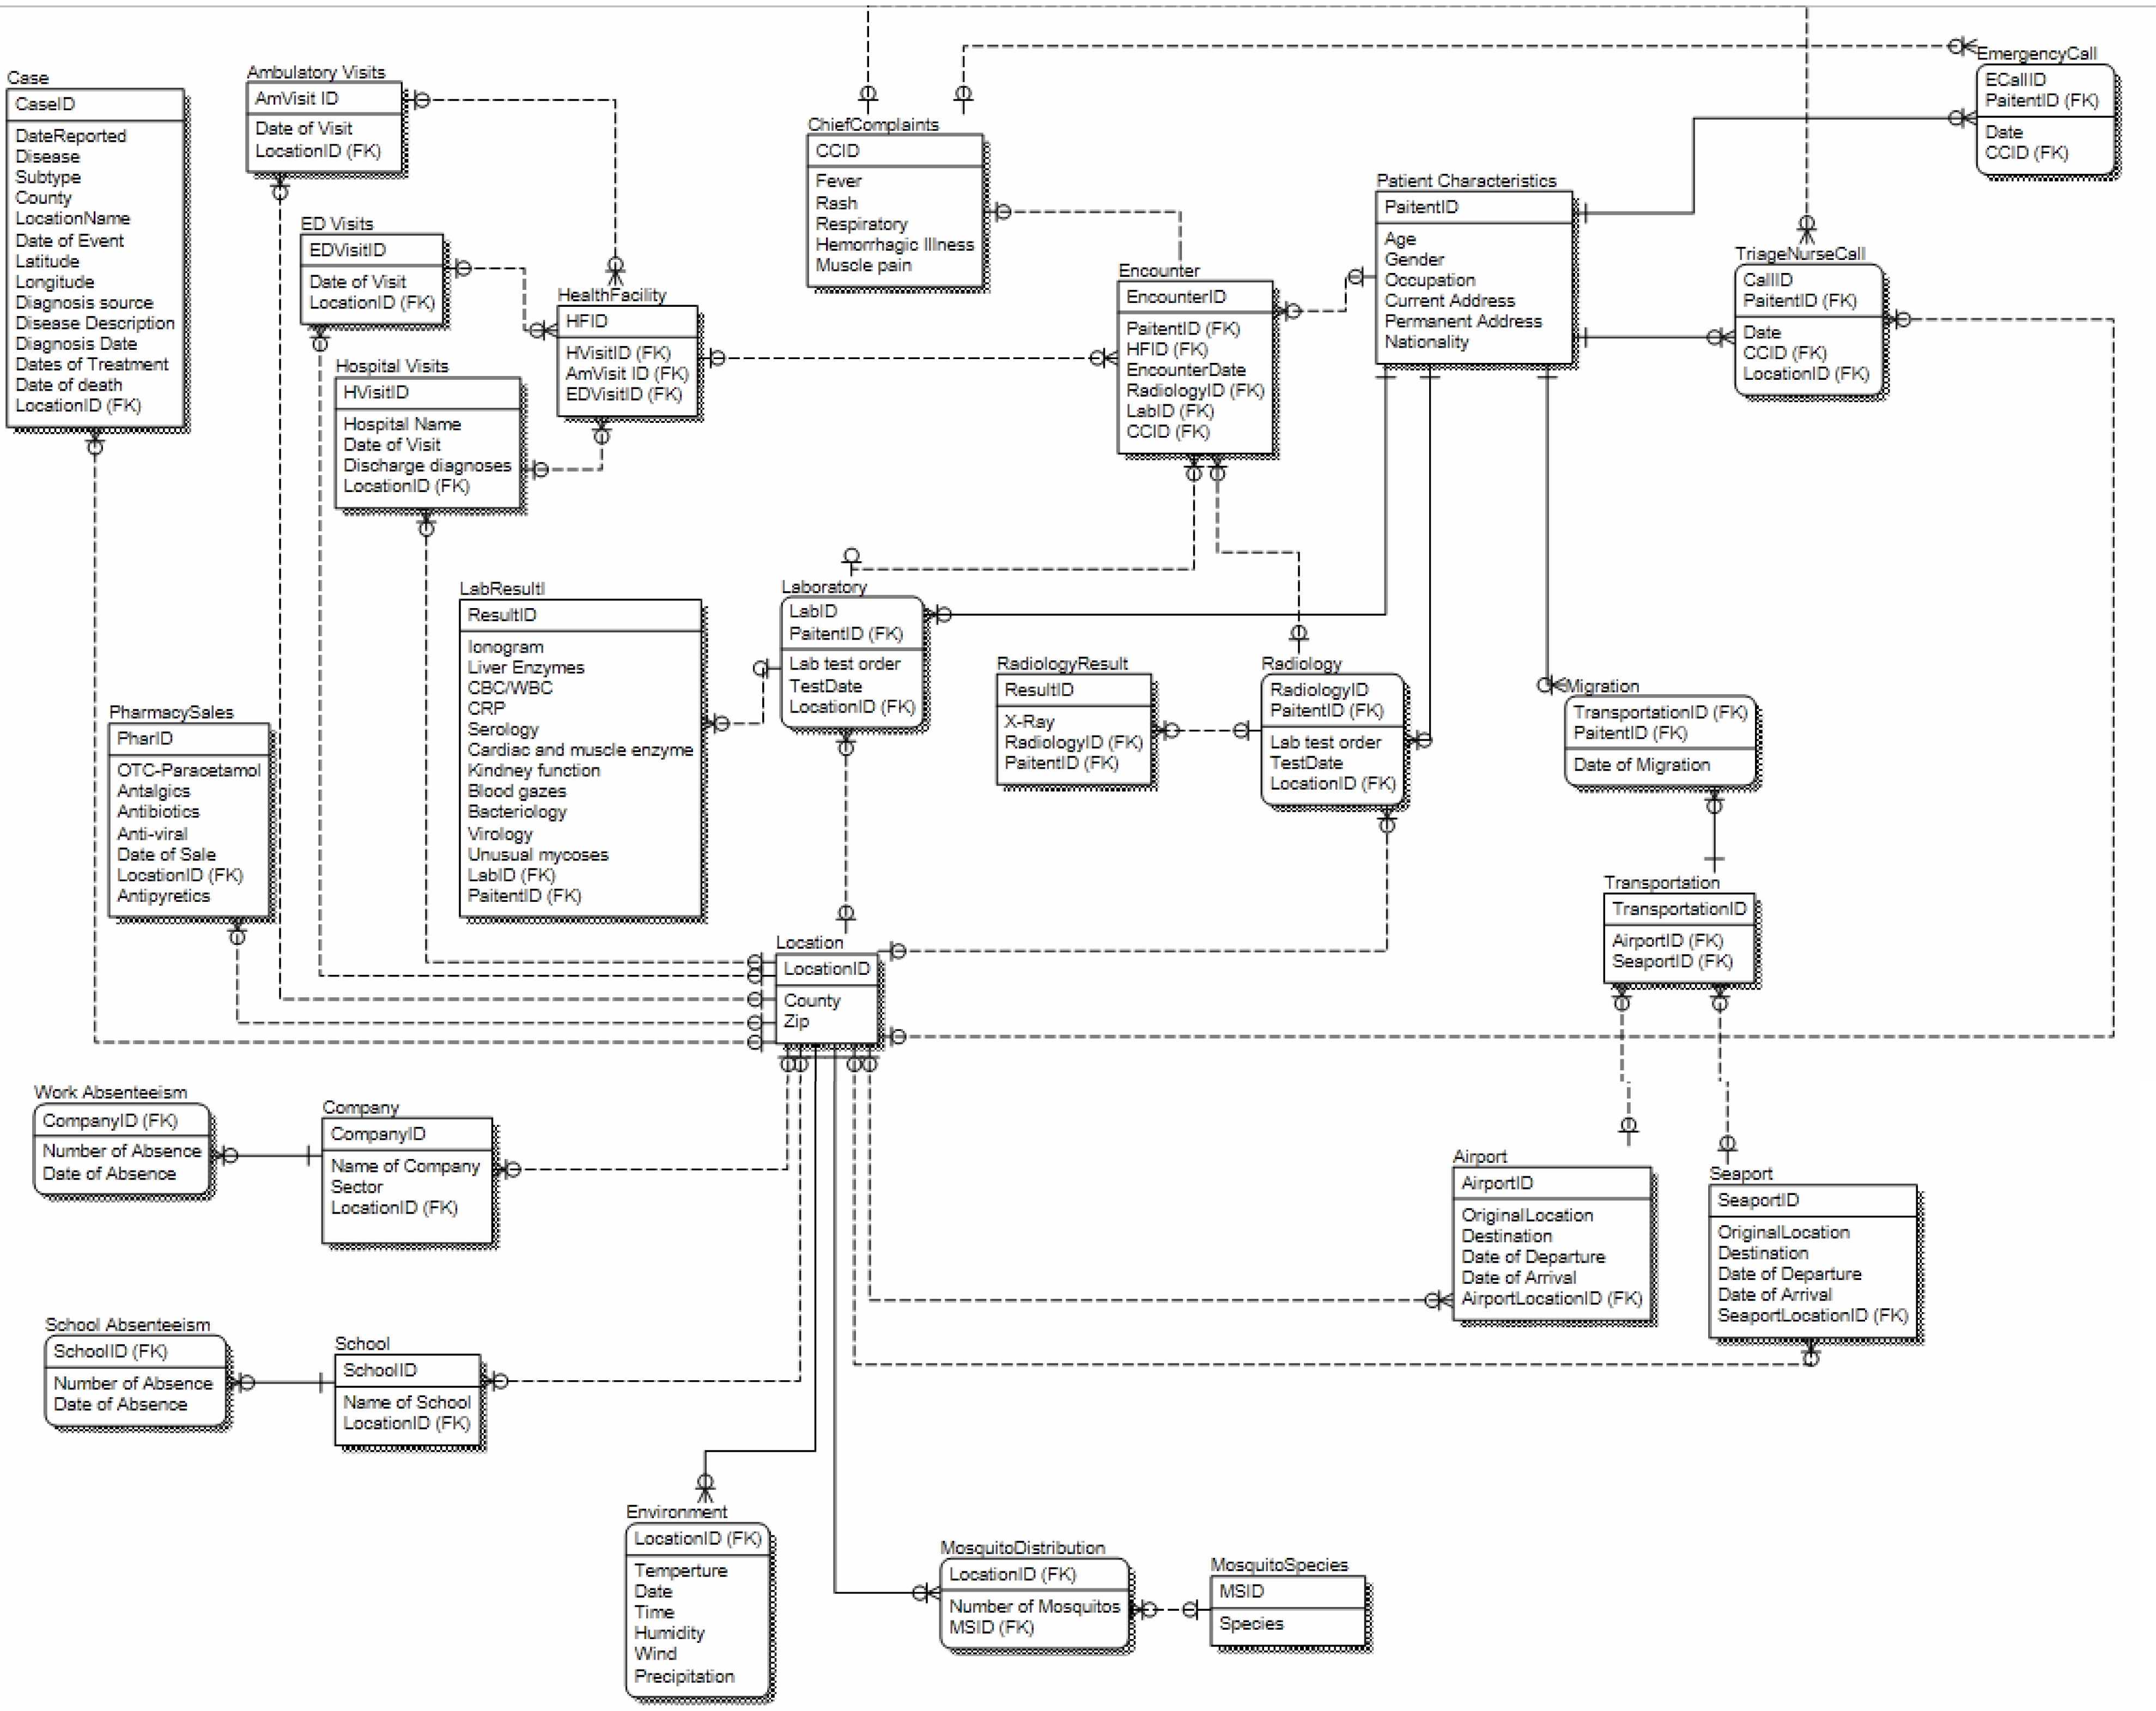 hospital management database er diagram 2 wire inter system 27td7 development and implementation of a surveillance network